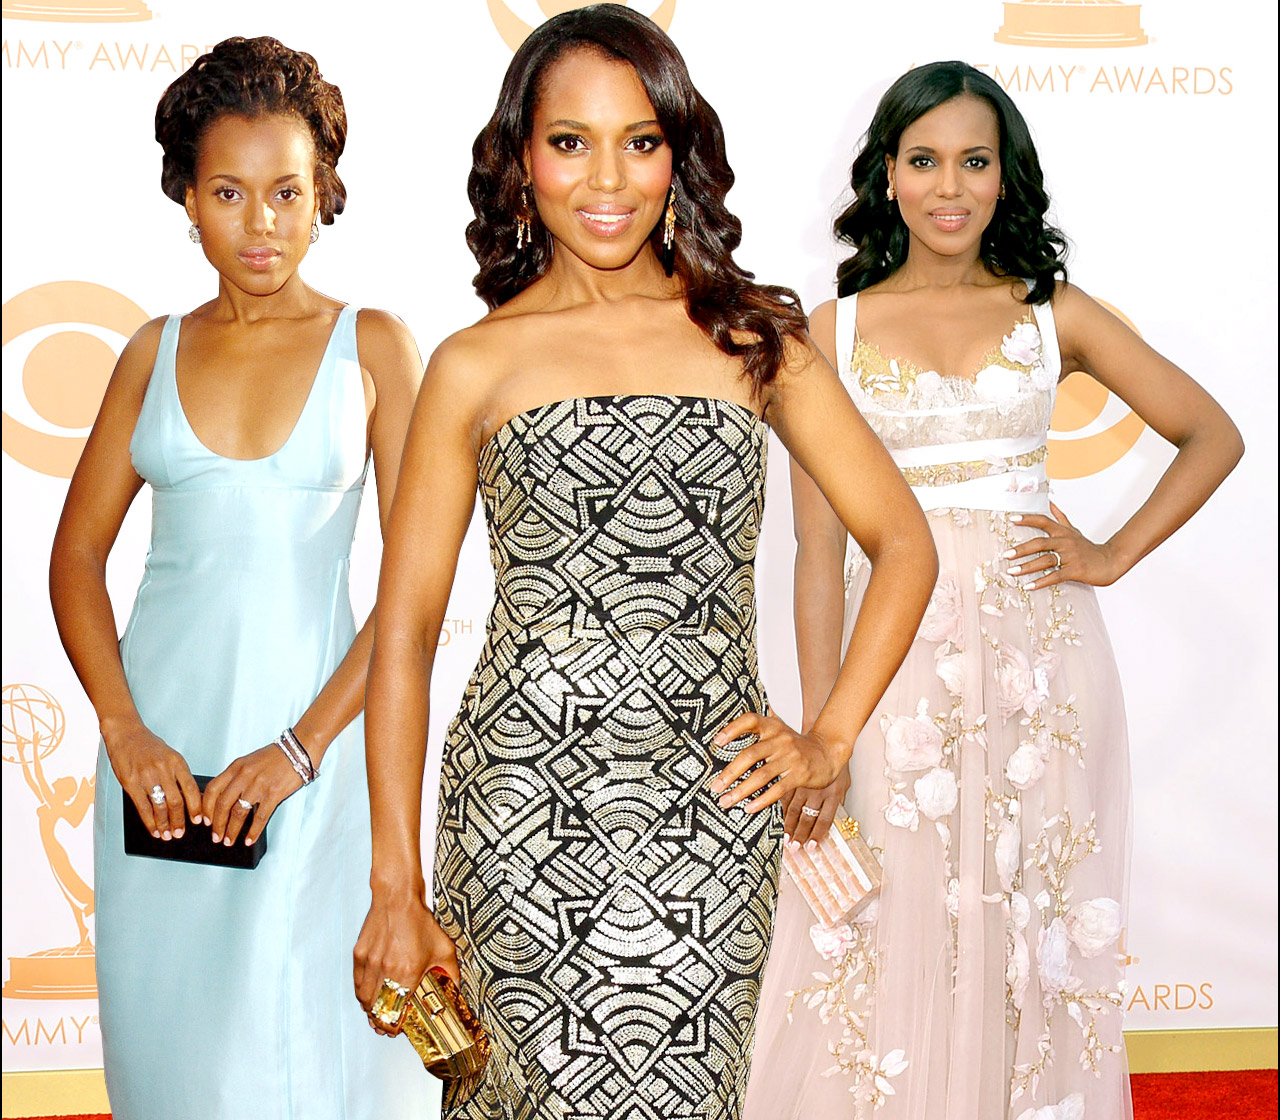 Happy Birthday, Kerry Washington ! The actress turns 42 on Thursday, January 31, and we're celebrating by taking a look back at her red carpet style evolution.